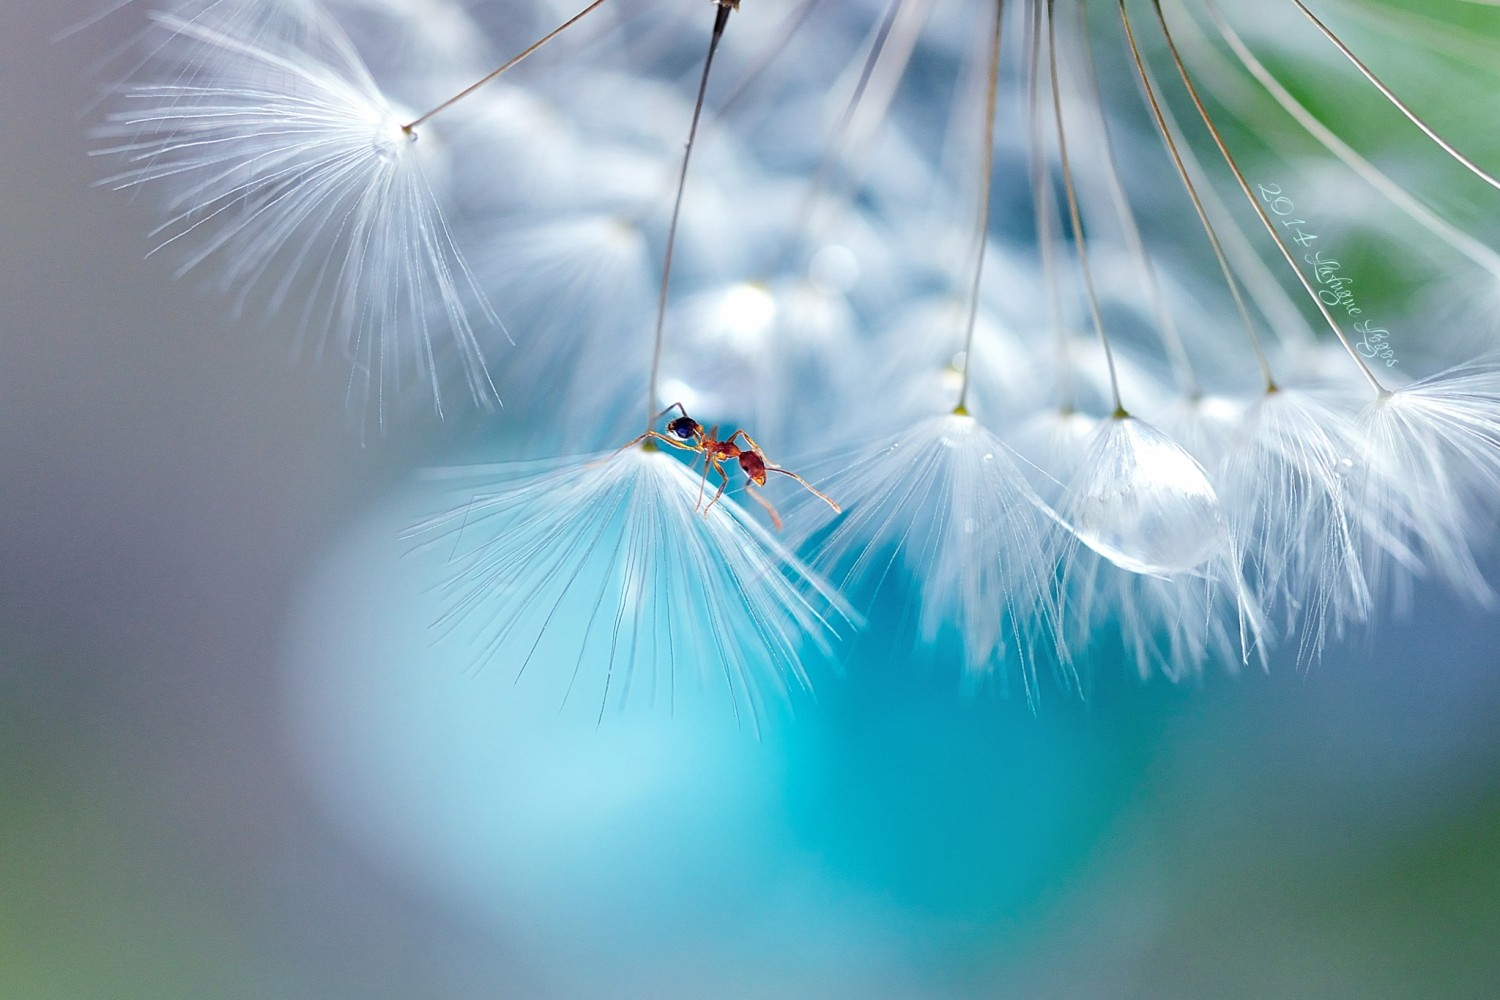 Best of 2014: Top 10 Macro Photos